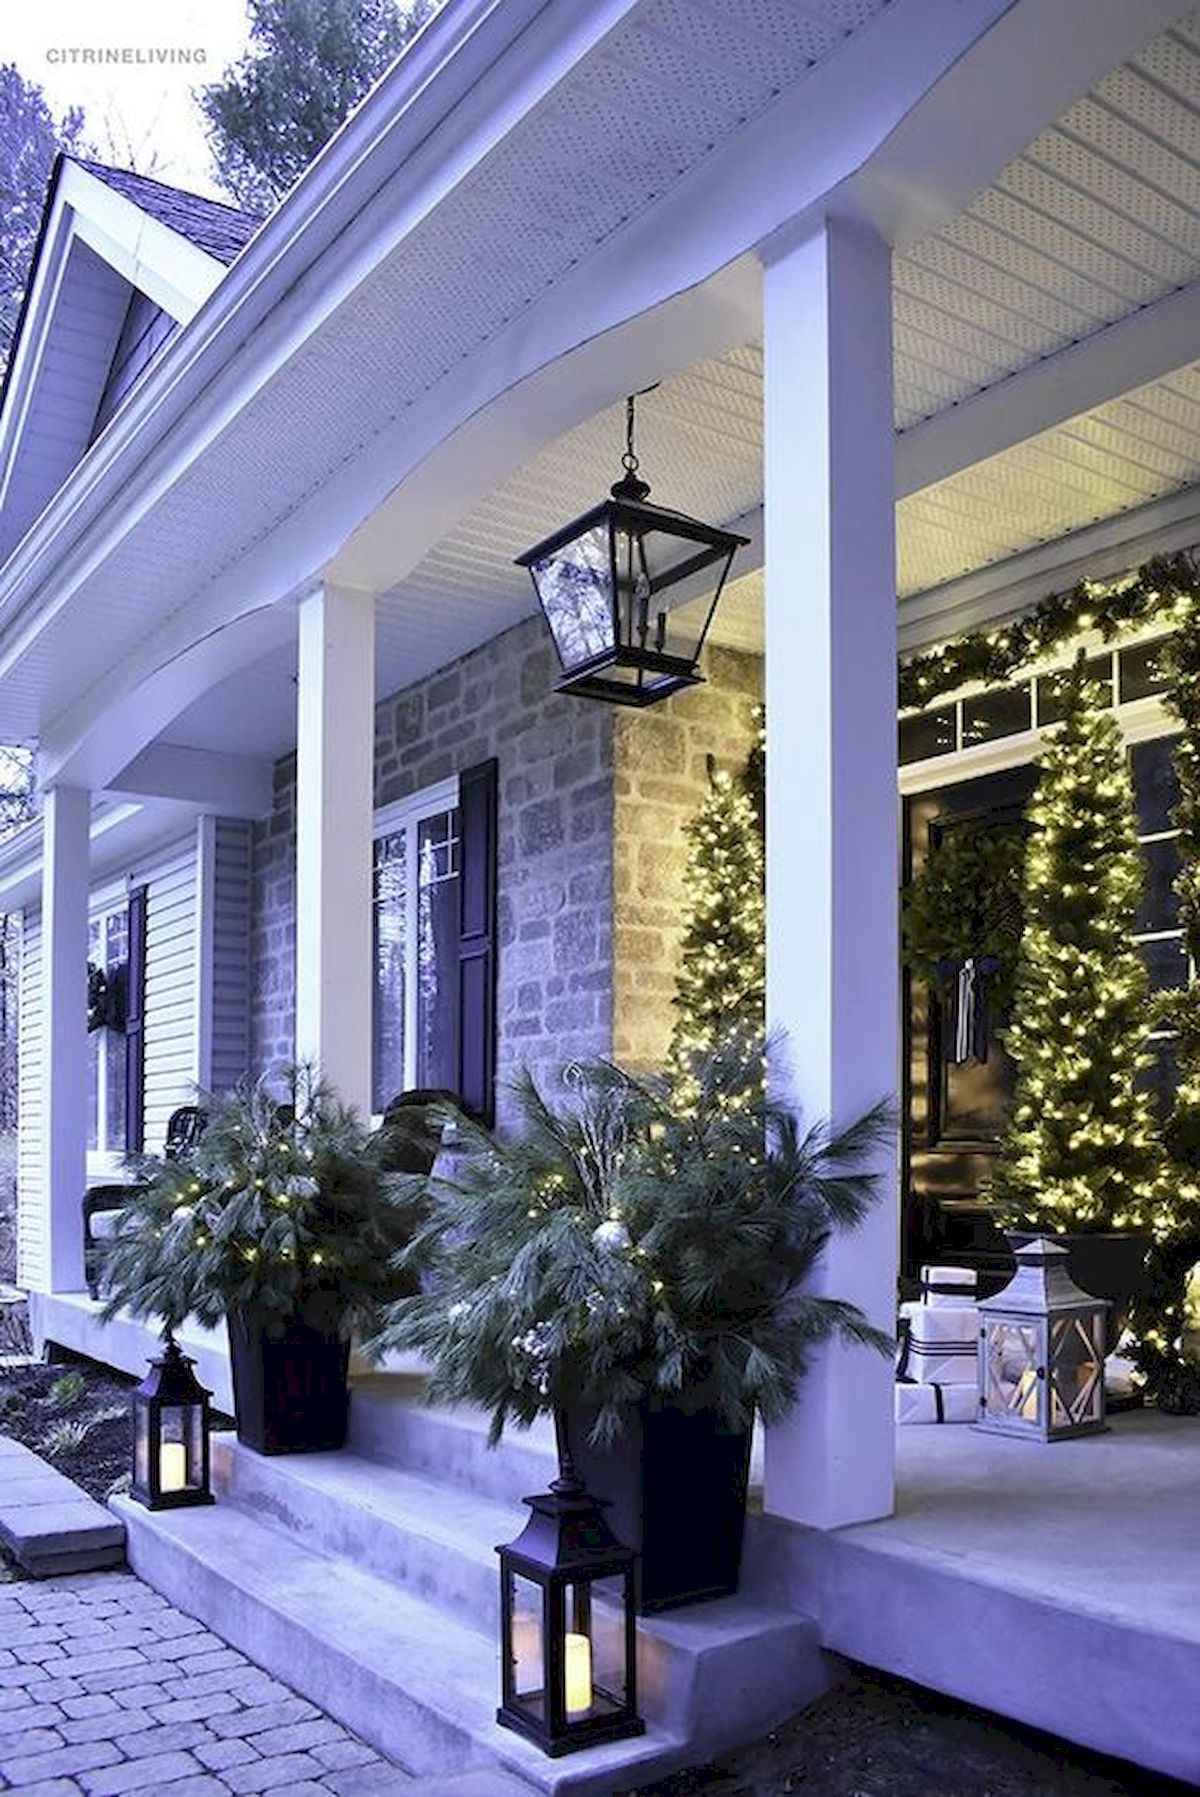 50 stunning front porch christmas lights decorations ideas (3)